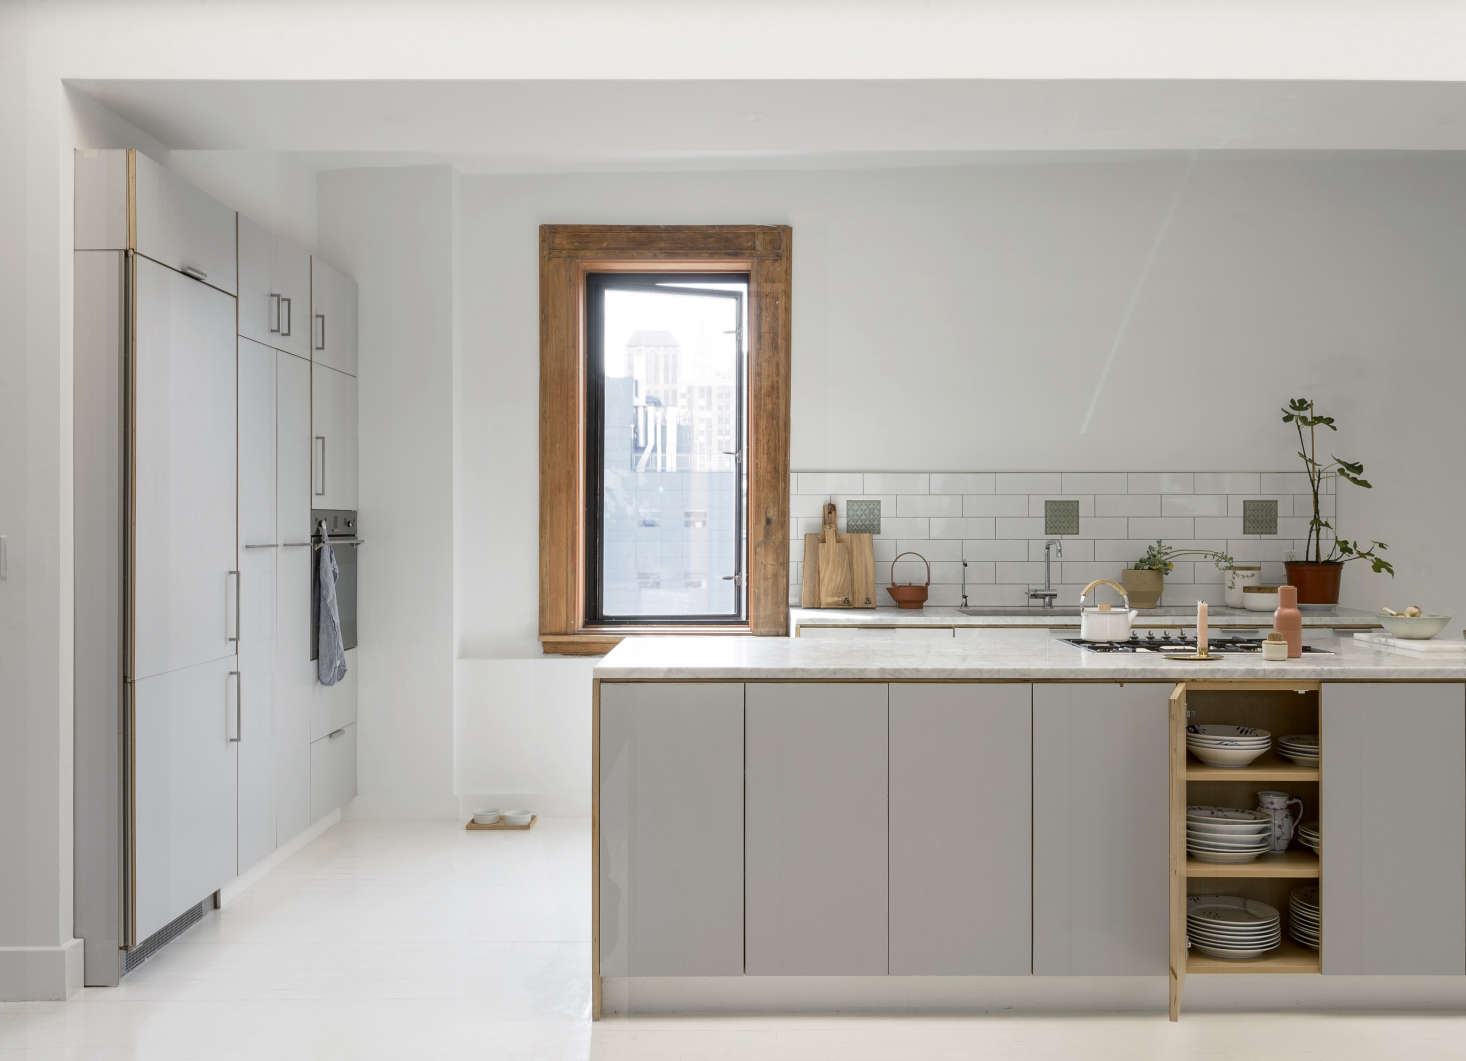 The apartment came with its streamlined kitchen, which Camilla says is composed of Ikea cabinets with custom fronts of pale gray laminate. Next to the sink, the terracotta planter and Edge Teapot, are by Skagerak (Objects by Camilla Vest serves as the Danish brand's exclusive US wholesaler). The Kaico Kettle is by Shoei Kogyo of Japan.